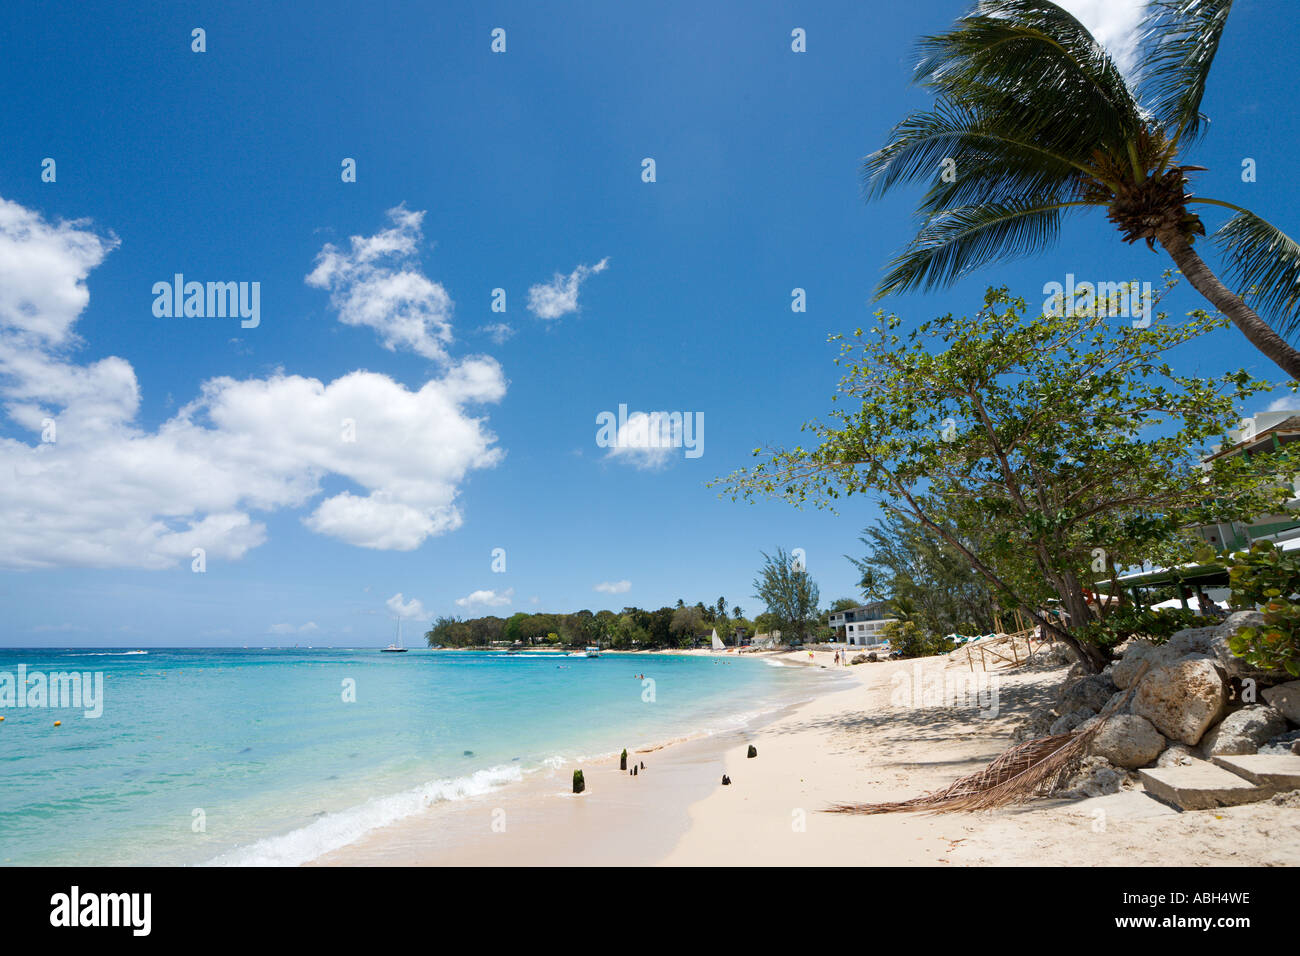 Beach at Holetown, West Coast, Barbados, Lesser Antilles, West Indies, Caribbean - Stock Image